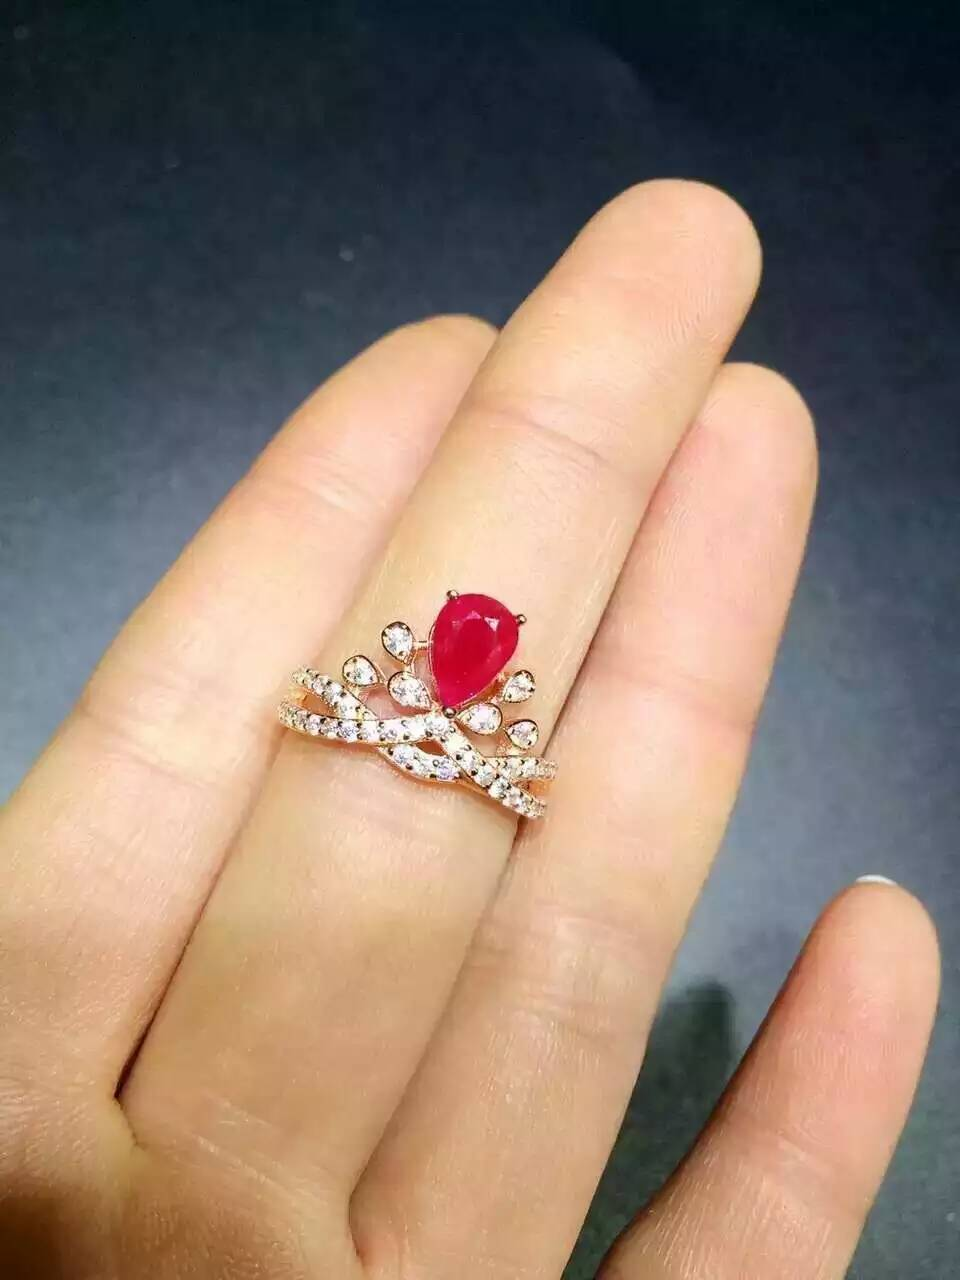 Natural red ruby stone Ring Natural gemstone ring 925 sterling silver trendy personality Crown womens wedding gift JewelryNatural red ruby stone Ring Natural gemstone ring 925 sterling silver trendy personality Crown womens wedding gift Jewelry